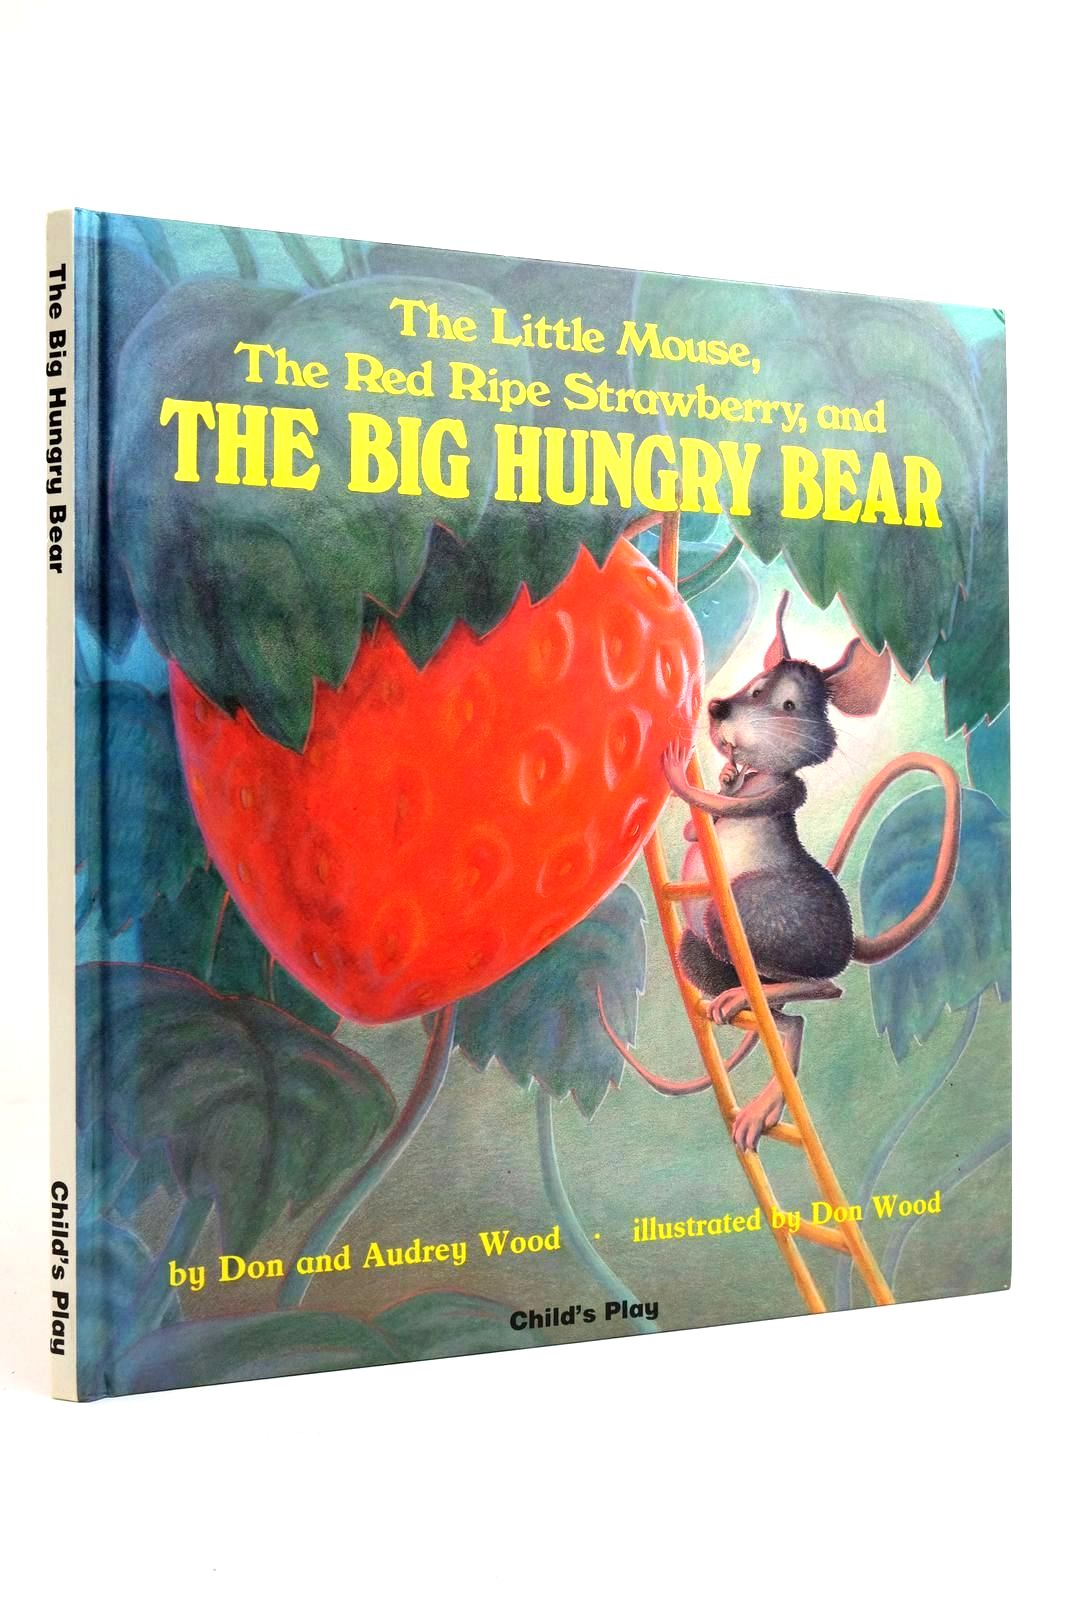 Photo of THE LITTLE MOUSE, THE RED RIPE STRAWBERRY, AND THE BIG HUNGRY BEAR written by Wood, Don Wood, Audrey illustrated by Wood, Don published by Child's Play (International) Ltd. (STOCK CODE: 2135575)  for sale by Stella & Rose's Books